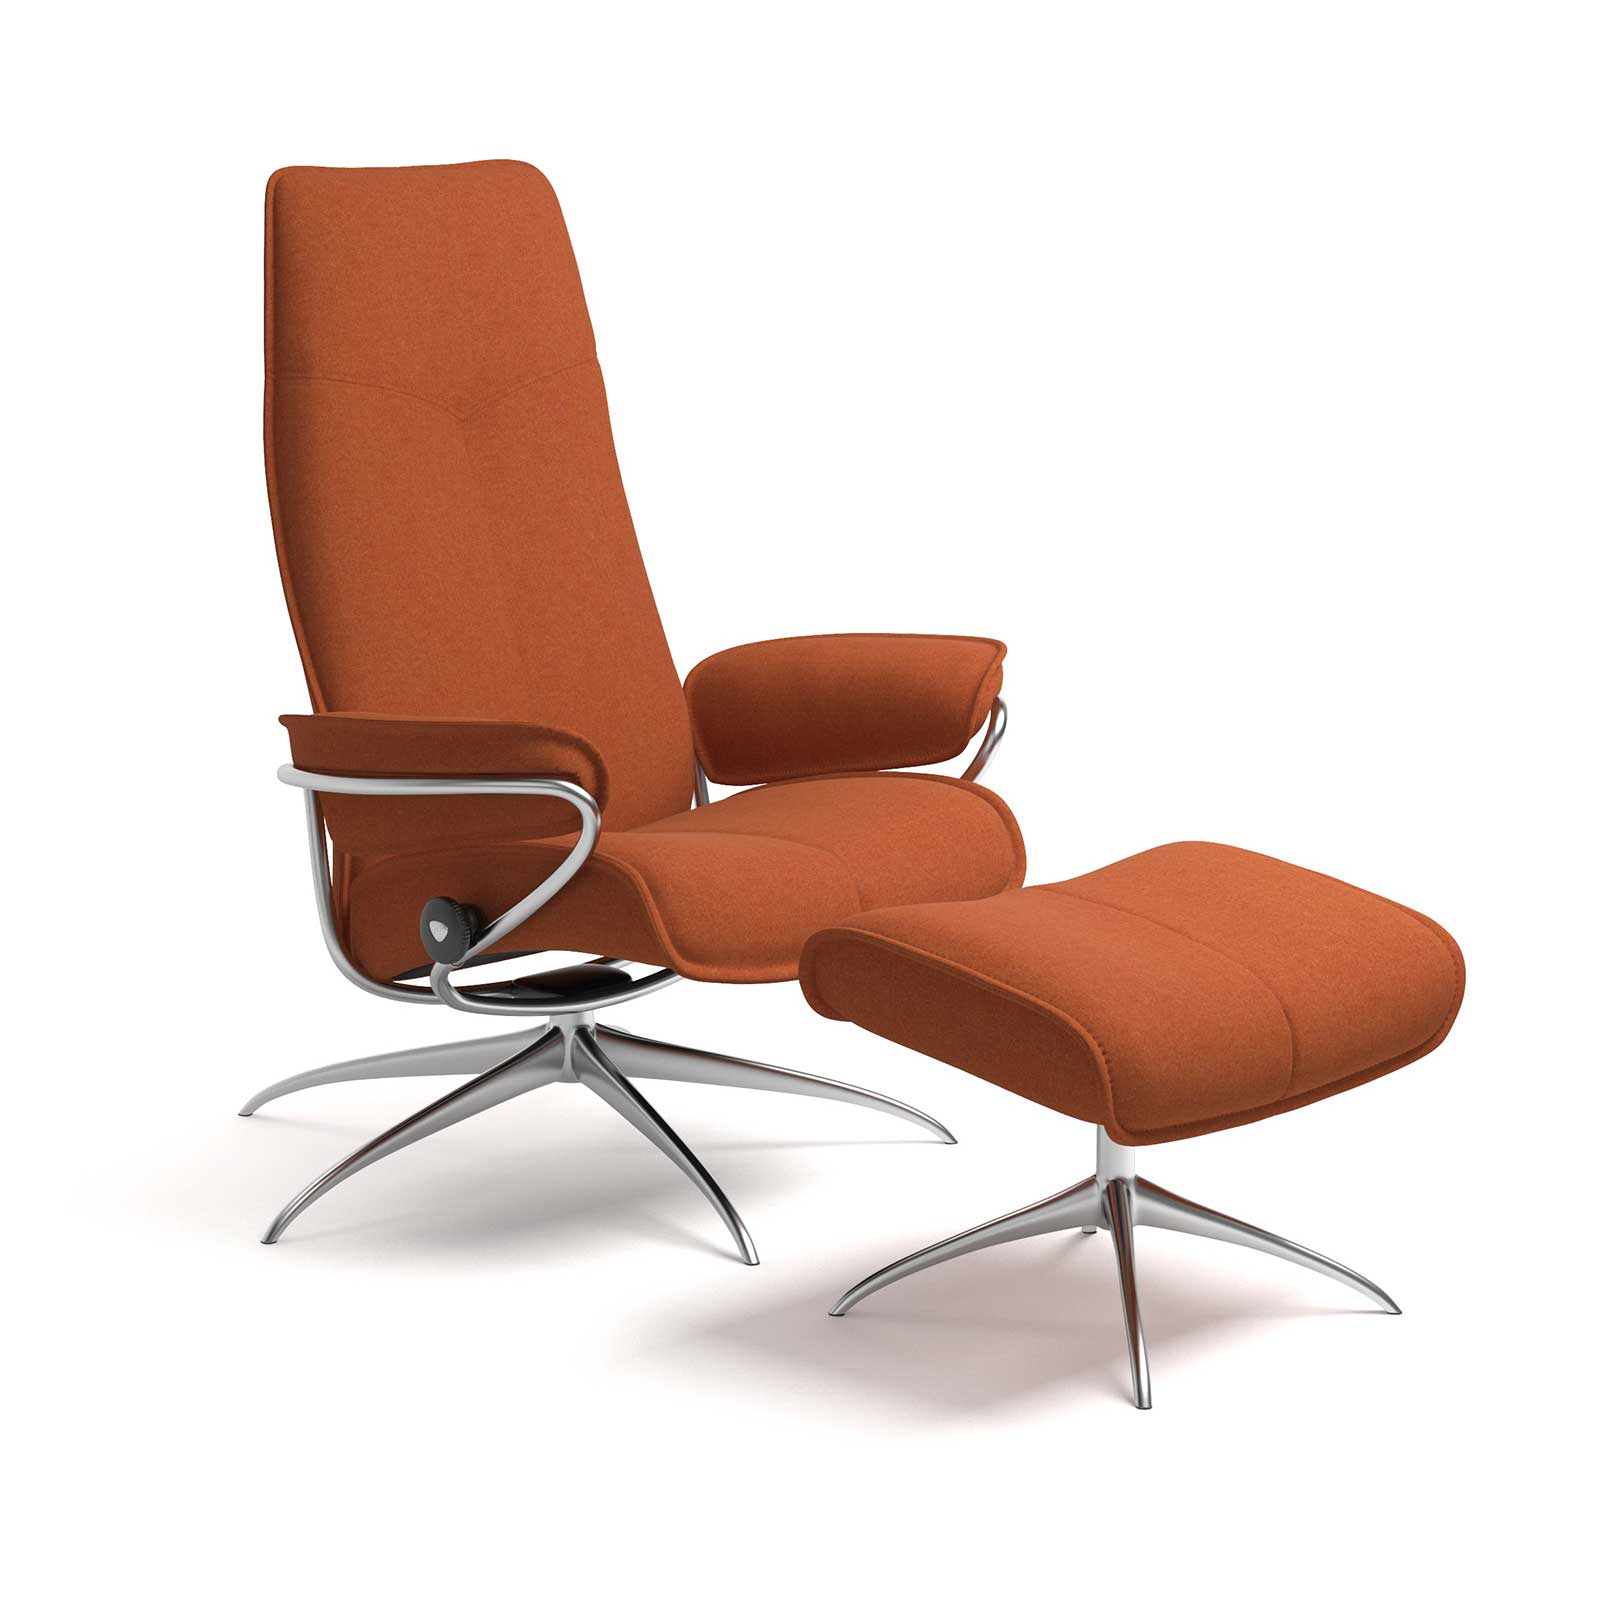 Stressless Sessel Stoff Stressless City High Back Calido Orange Gestell Chrom Mit